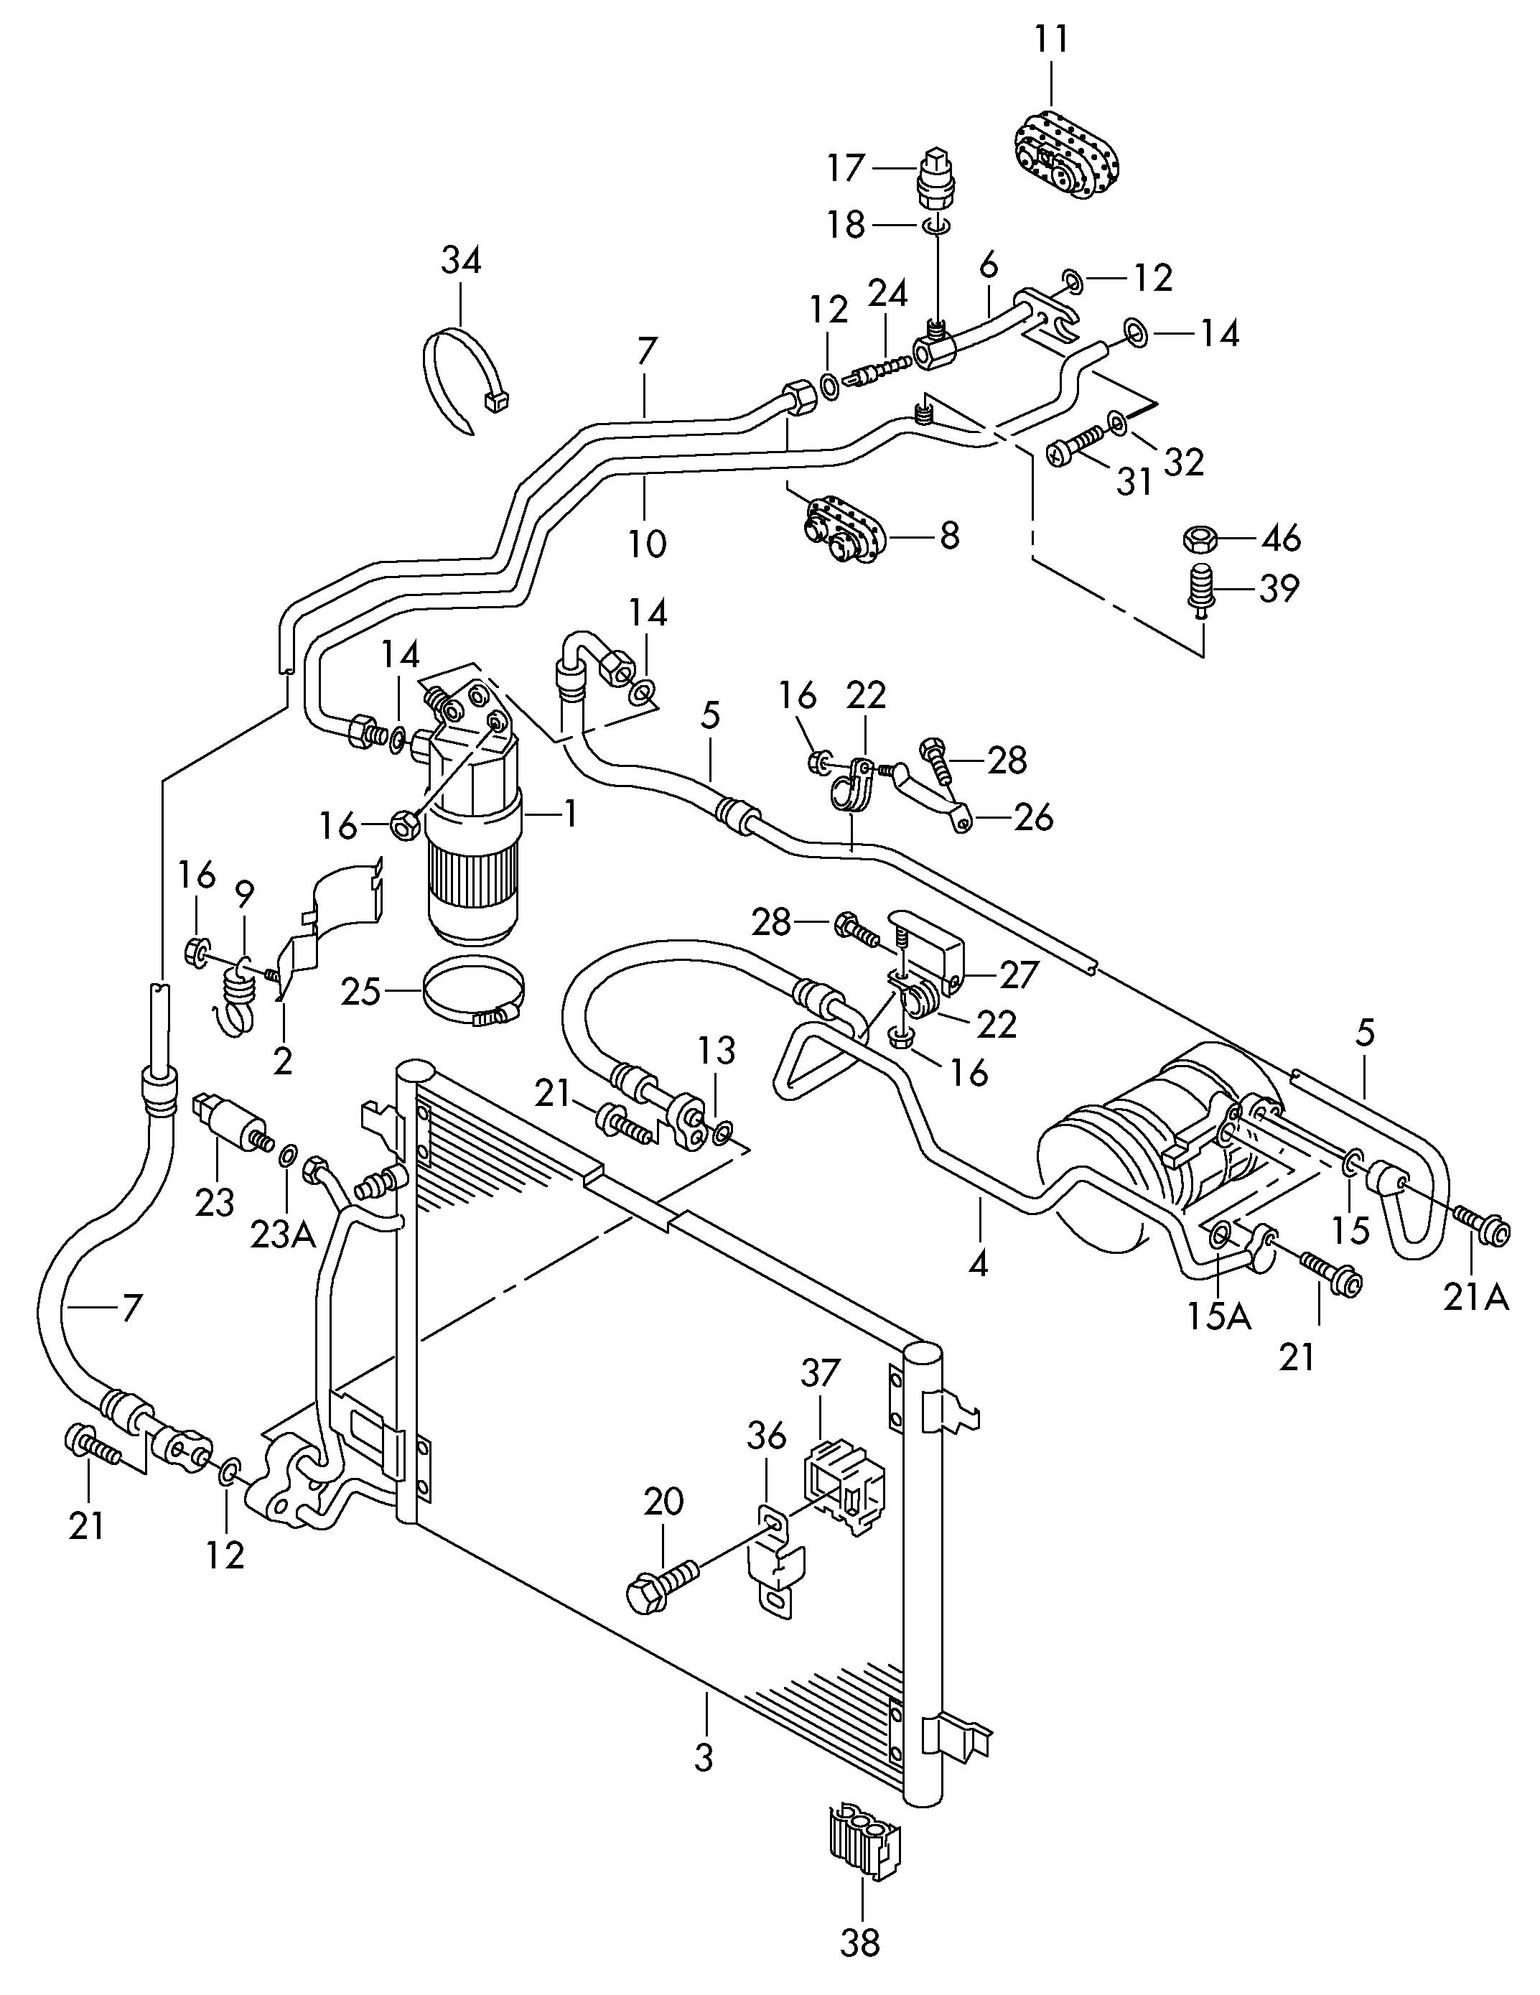 hight resolution of audi air conditioning wiring diagram air conditioning commercial hvac diagram building hvac system diagram